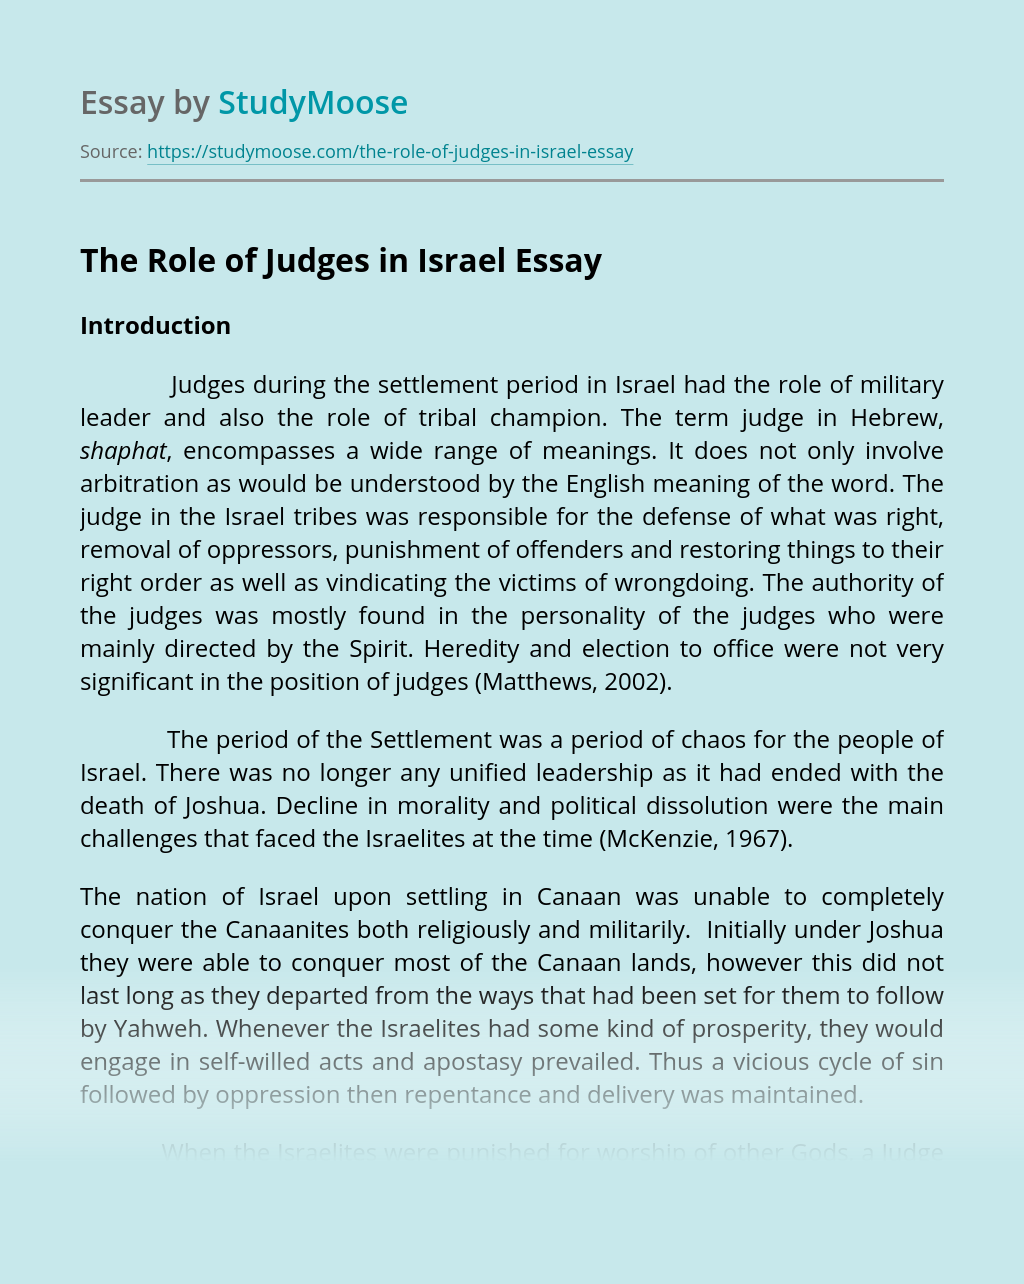 The Role of Judges in Israel